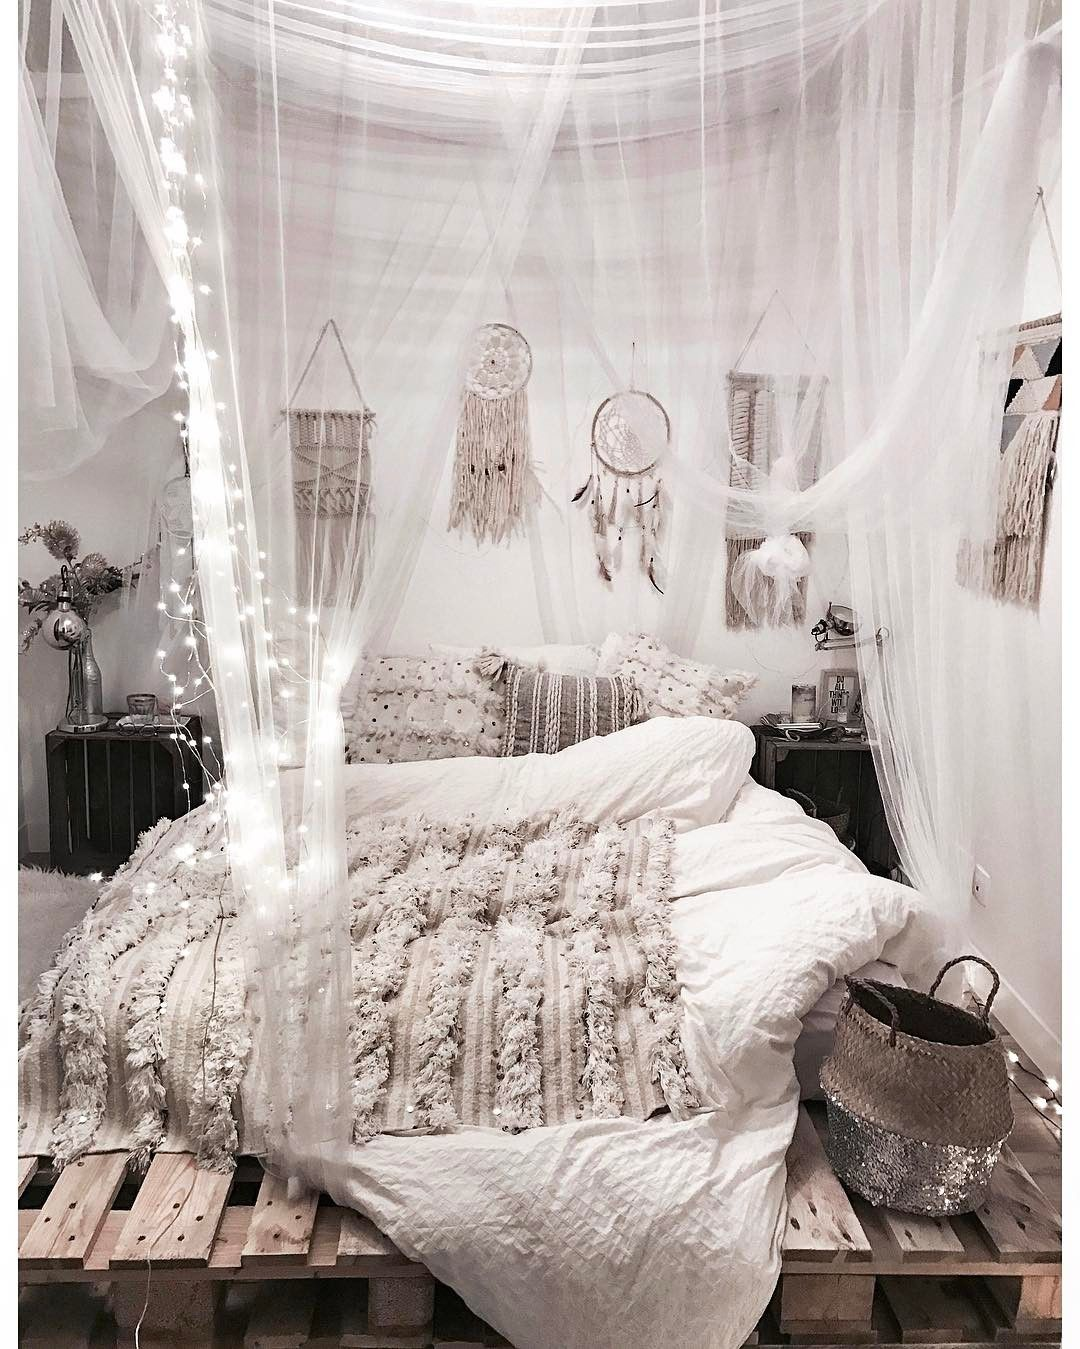 DIY Dreamy Boho Bedroom Decor Ideas   Even Your Kitchen May Have A Special Boho  Style Infused Inside. Although Designing Such Room May Be Challenging.